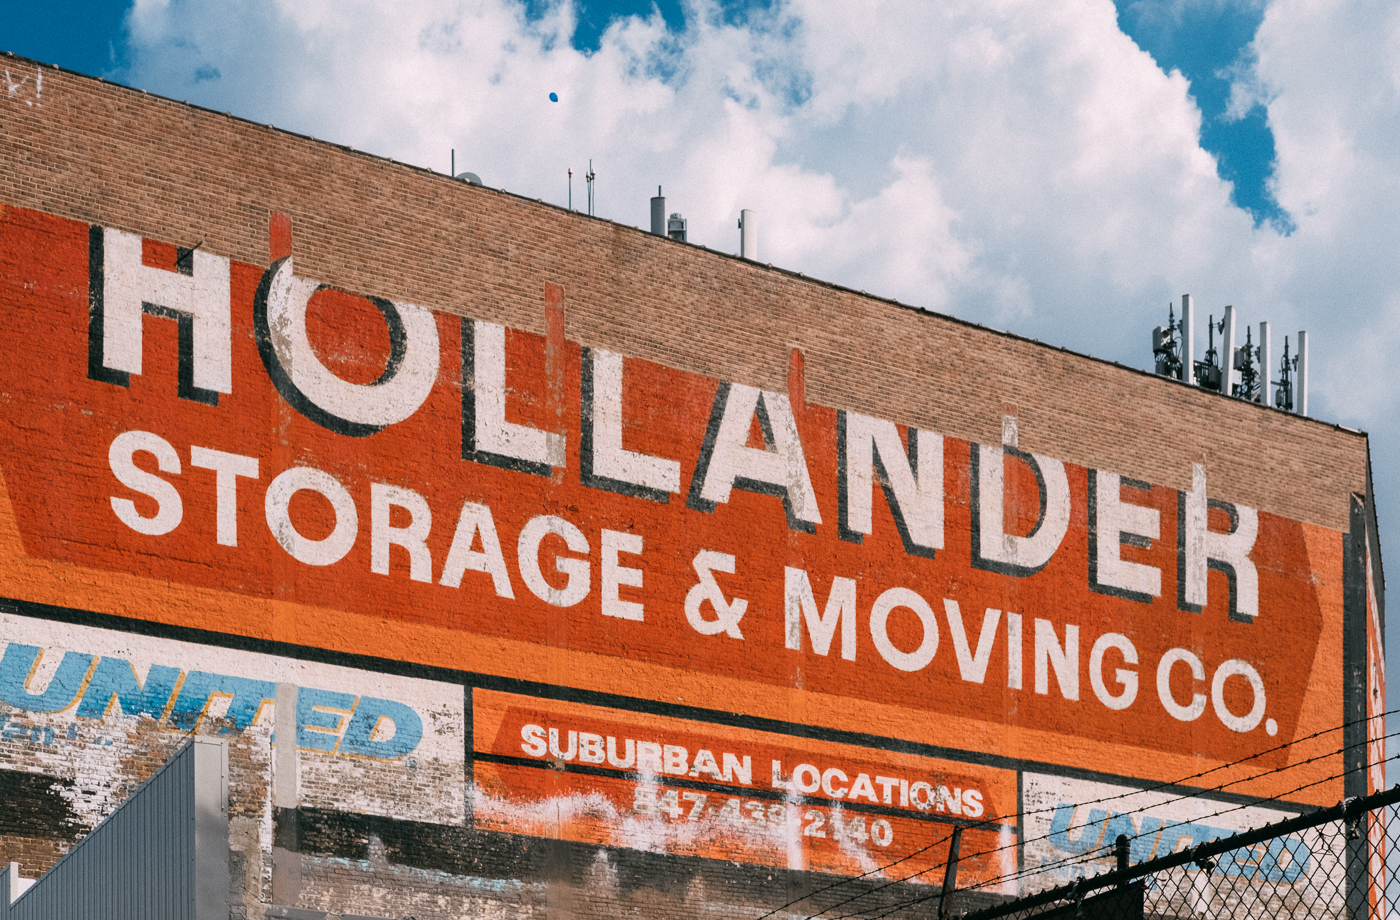 Hollander Storage & Moving Co.